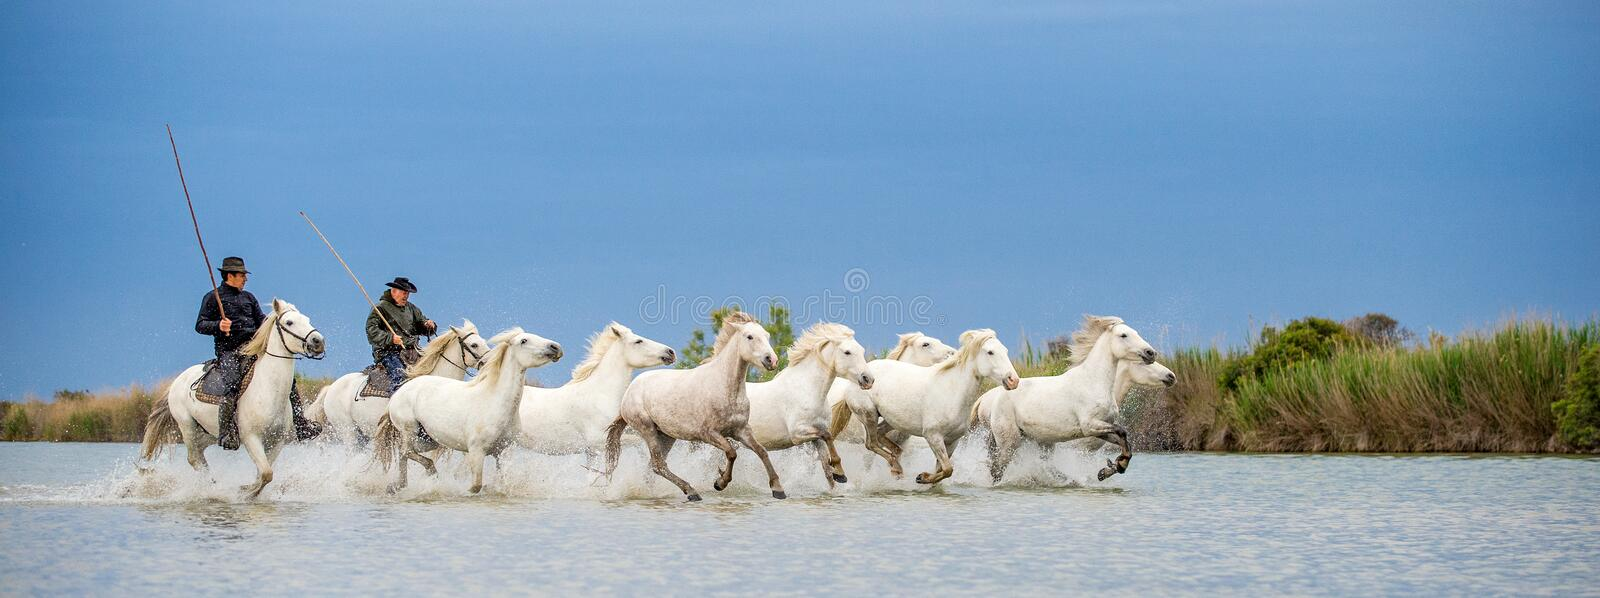 Riders on the White horse drives the horses through the water. royalty free stock photos